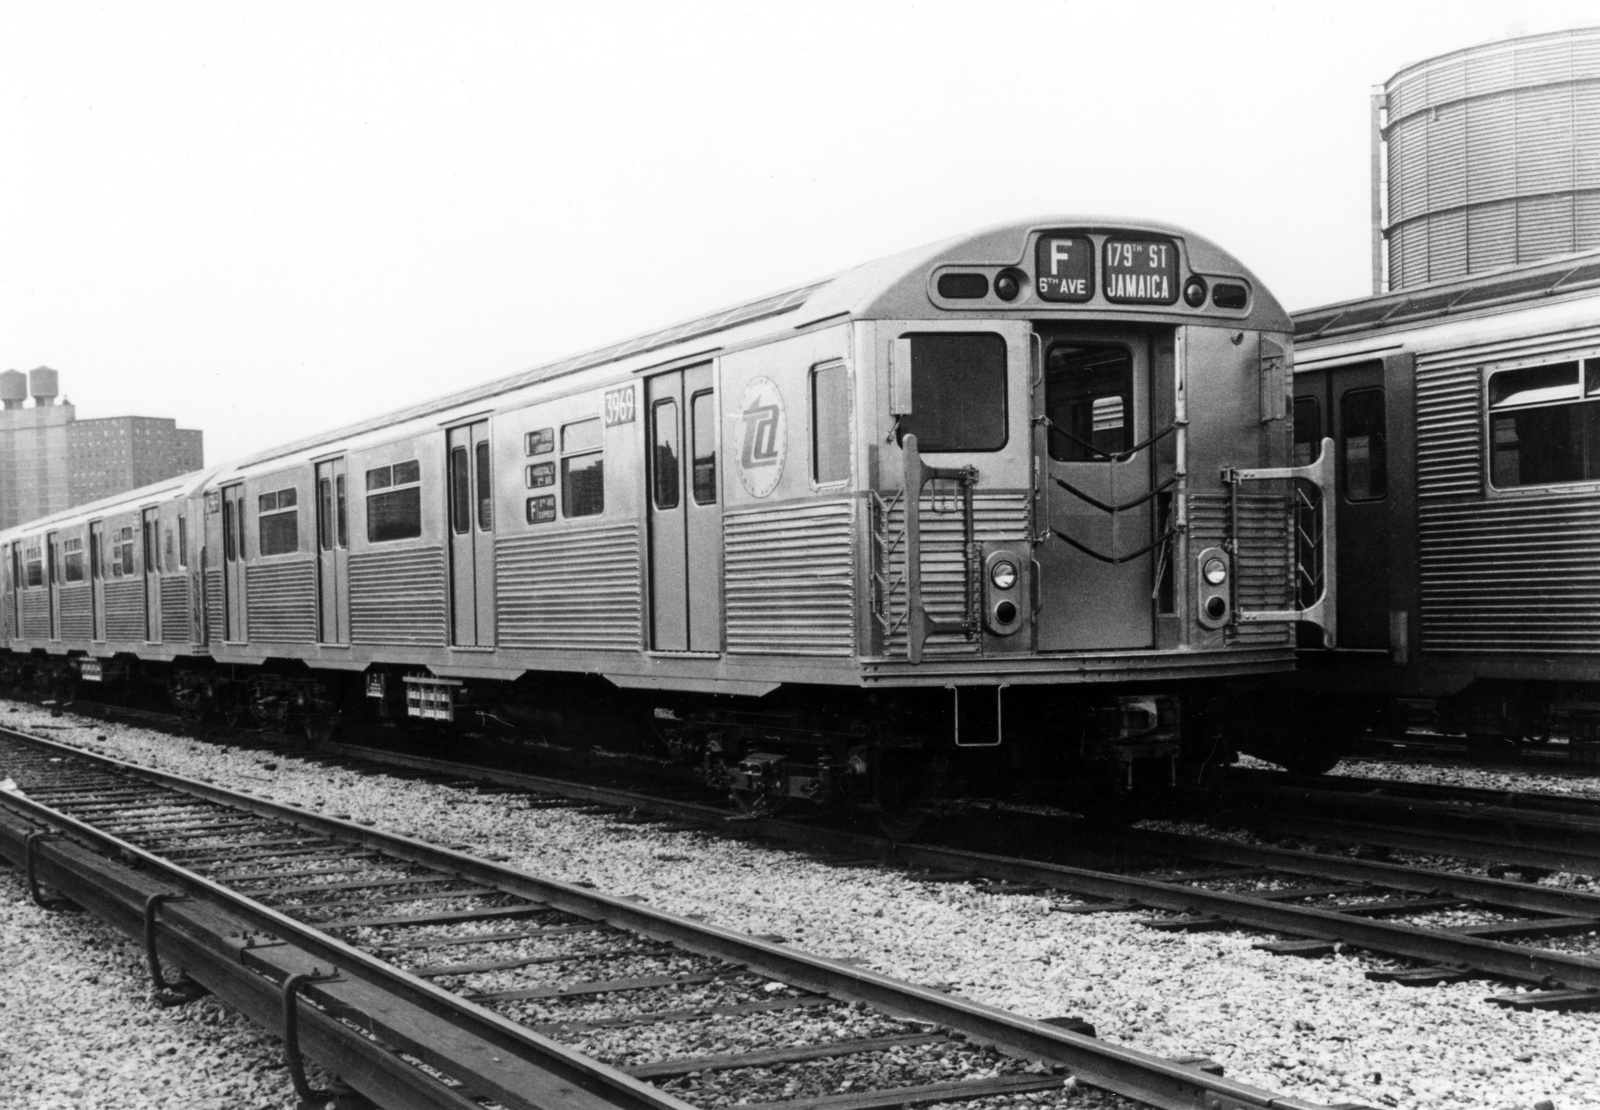 (273k, 1024x812)<br><b>Country:</b> United States<br><b>City:</b> New York<br><b>System:</b> New York City Transit<br><b>Location:</b> Coney Island Yard<br><b>Car:</b> R-38 (St. Louis, 1966-1967)  3969 <br><b>Photo by:</b> Ed Watson/Arthur Lonto Collection<br><b>Collection of:</b> Frank Pfuhler<br><b>Date:</b> 1966<br><b>Viewed (this week/total):</b> 2 / 579